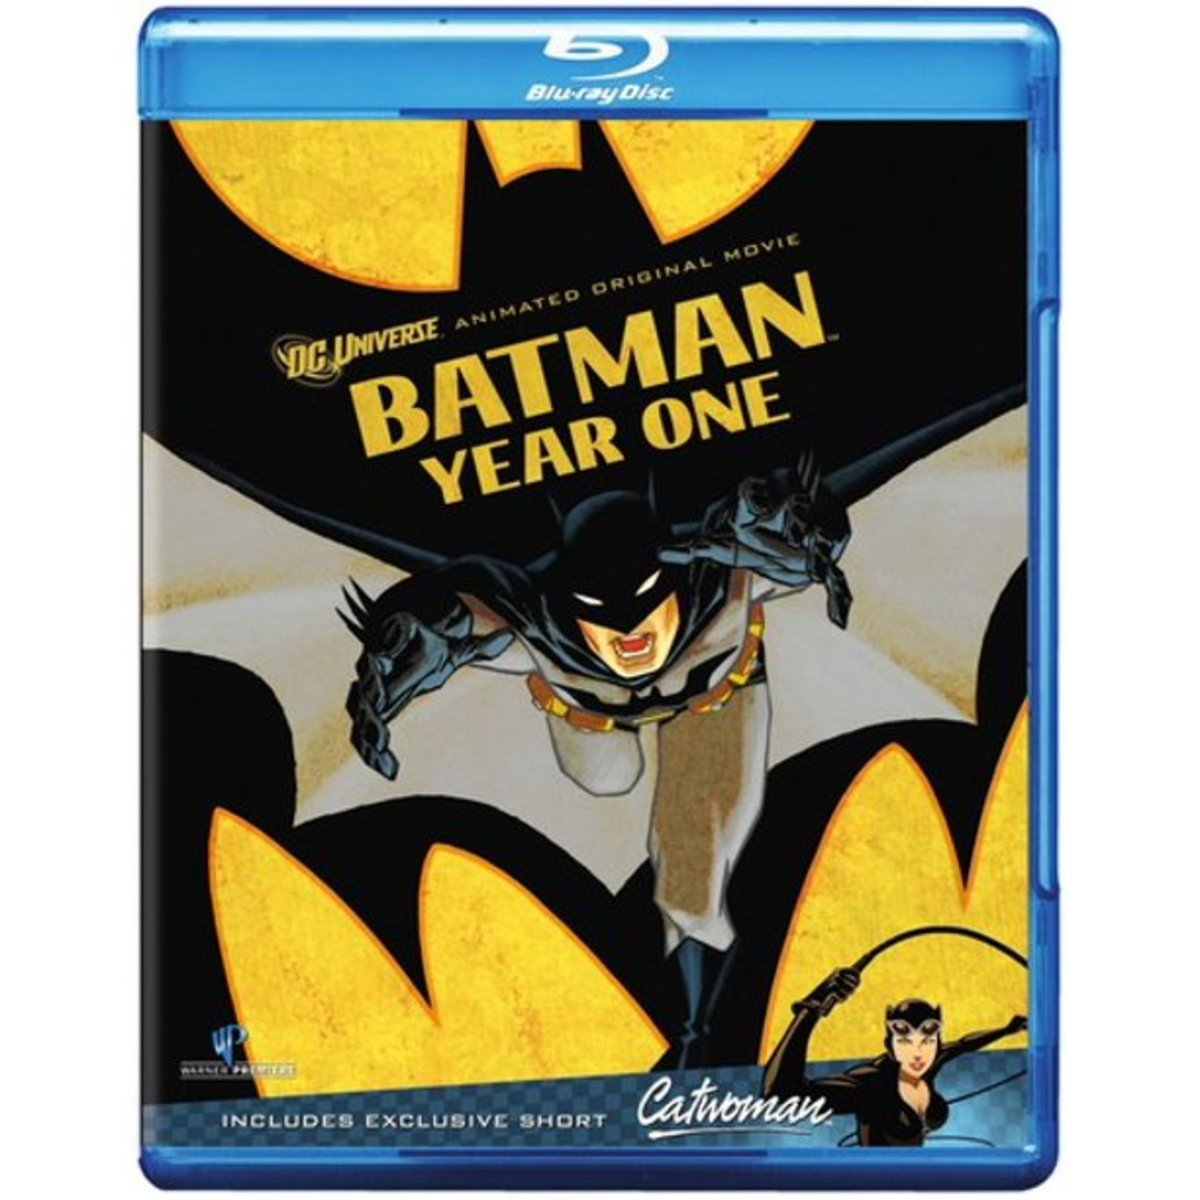 Animated Movie Review: 'Batman: Year One' (2011)